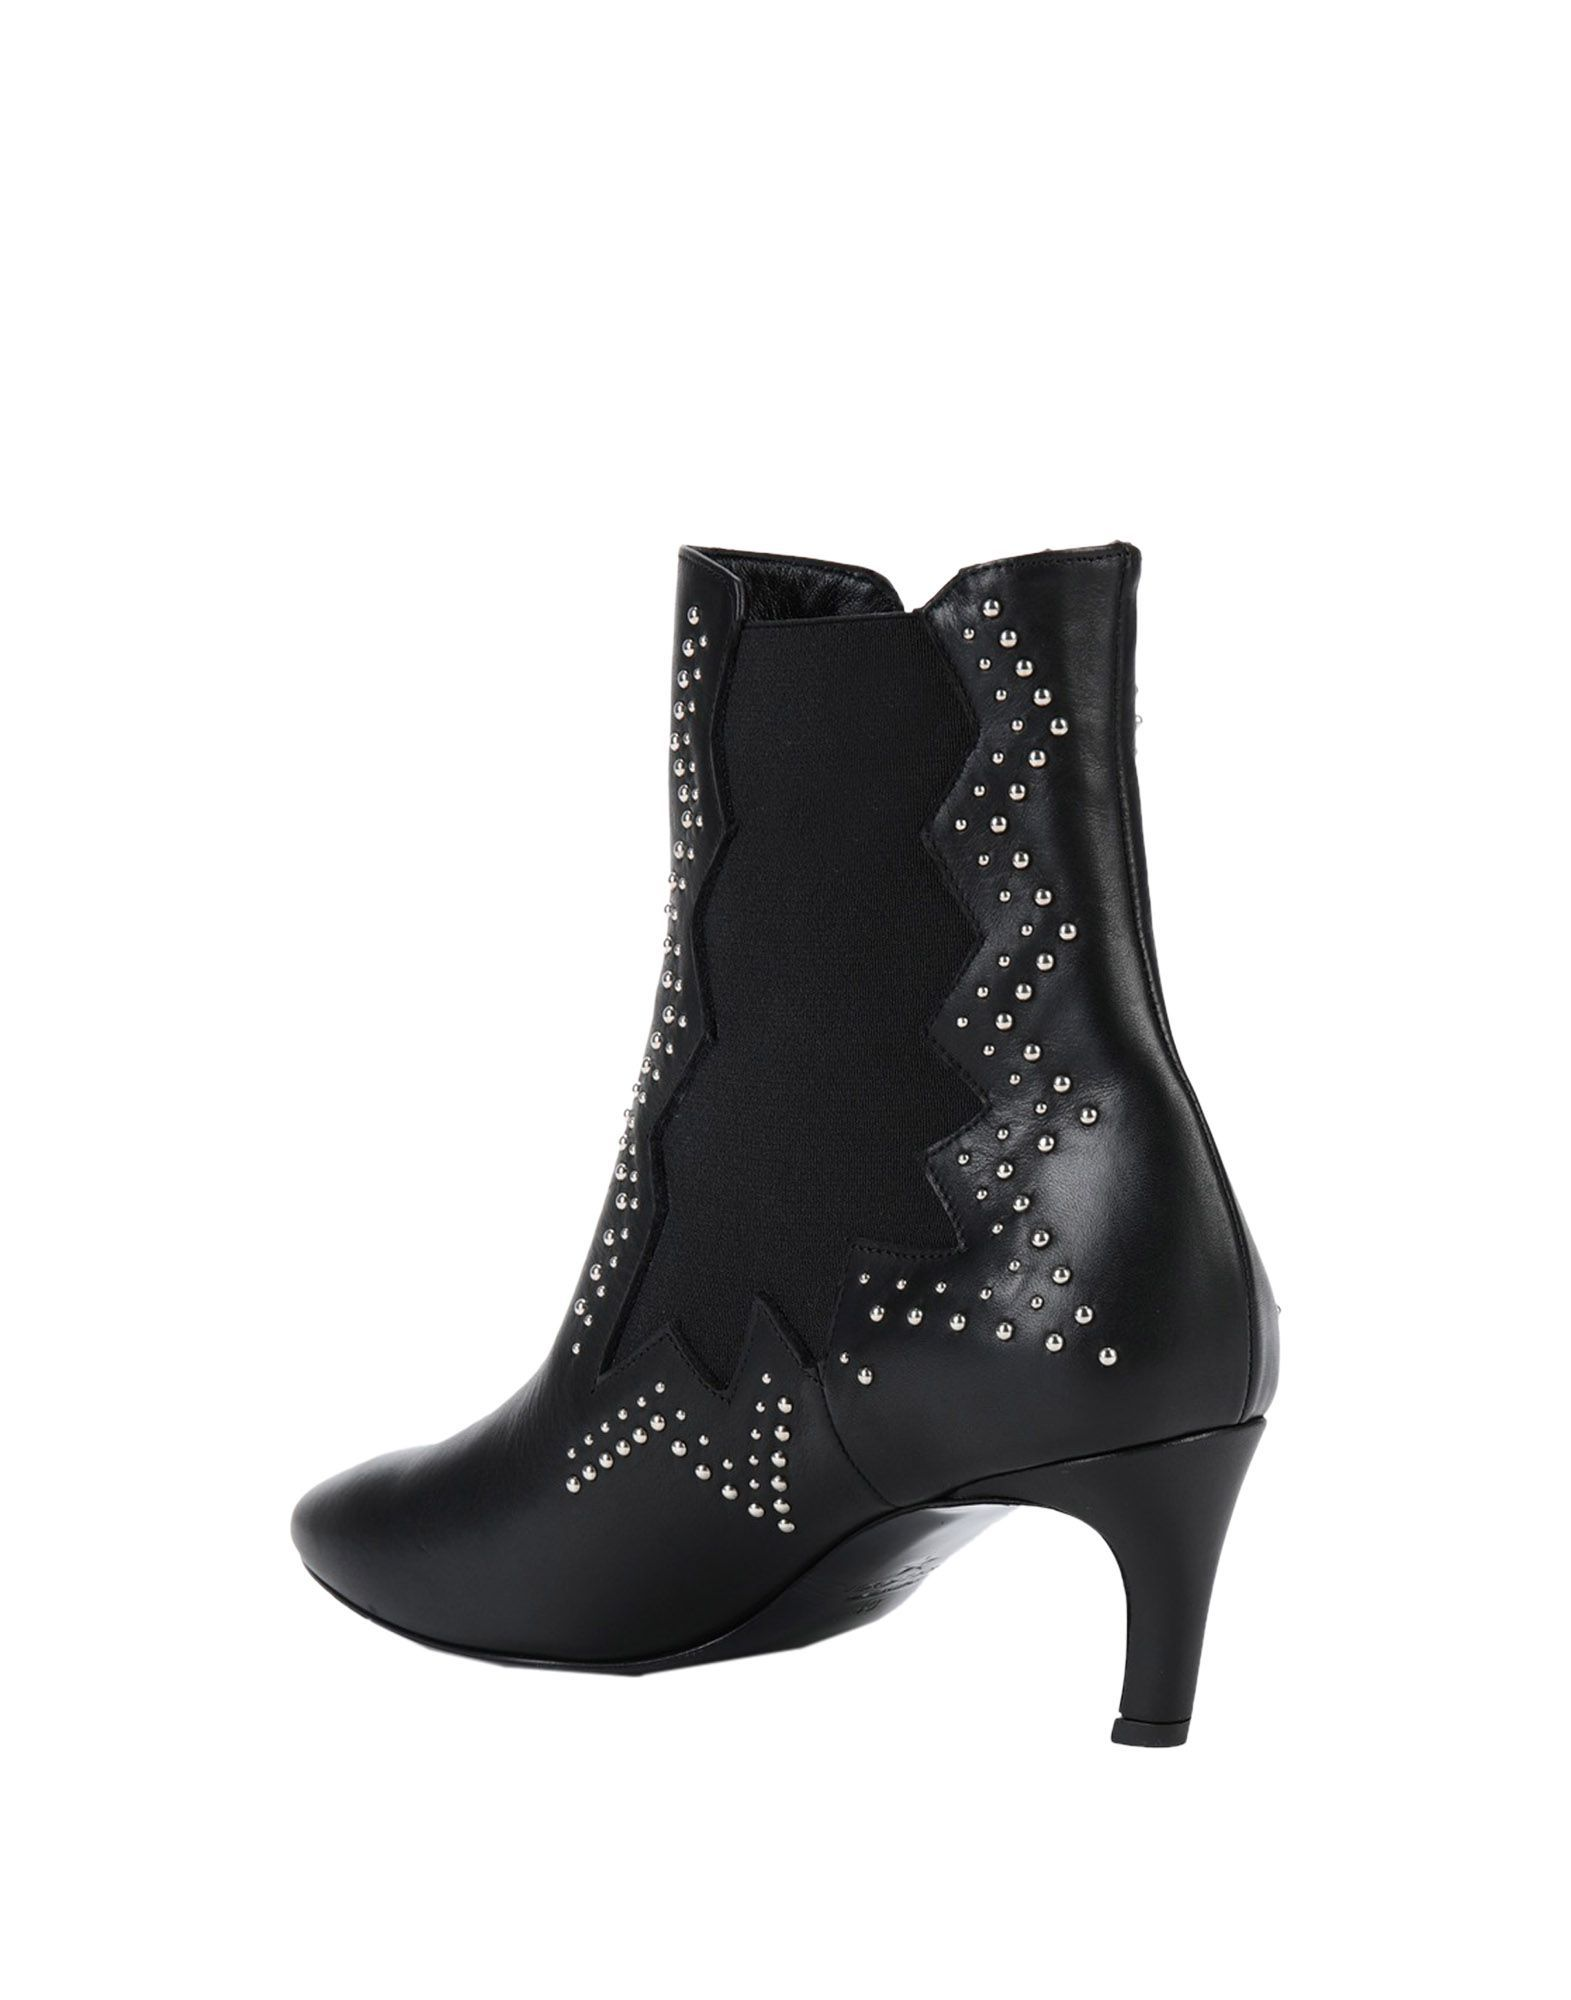 FOOTWEAR Marc Ellis Black Woman Calf